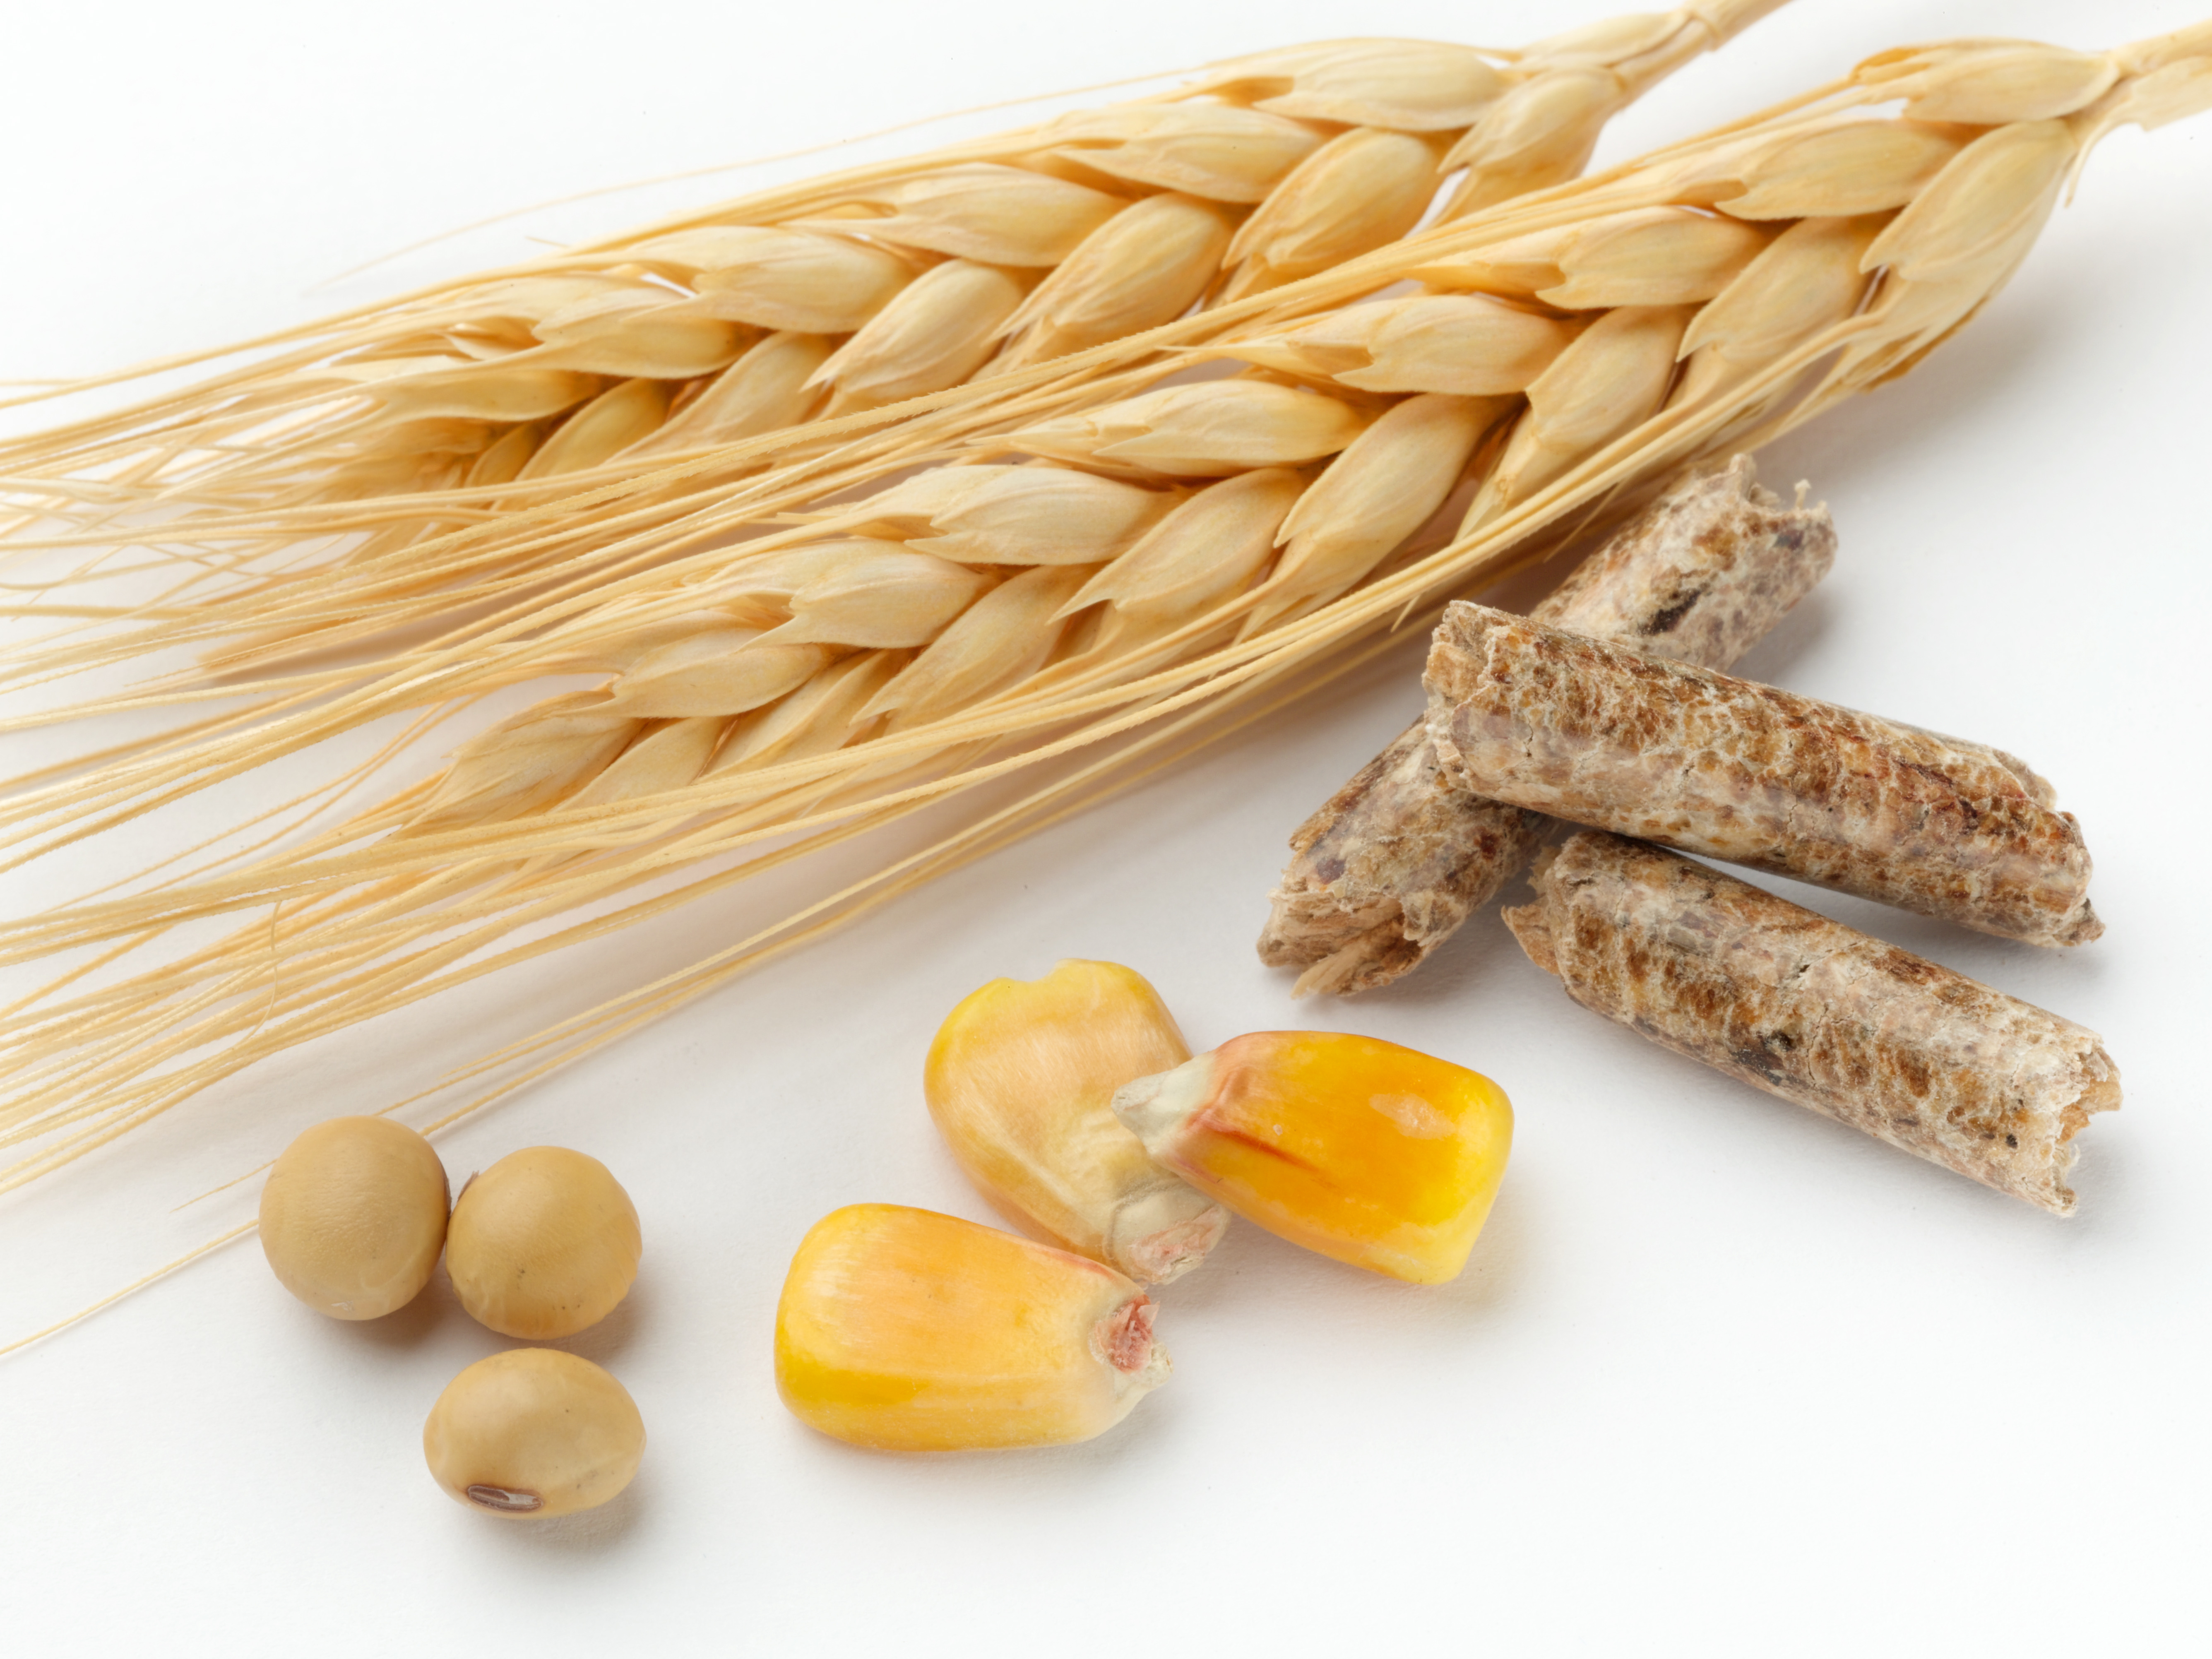 Corn wheat and soybeans on white background